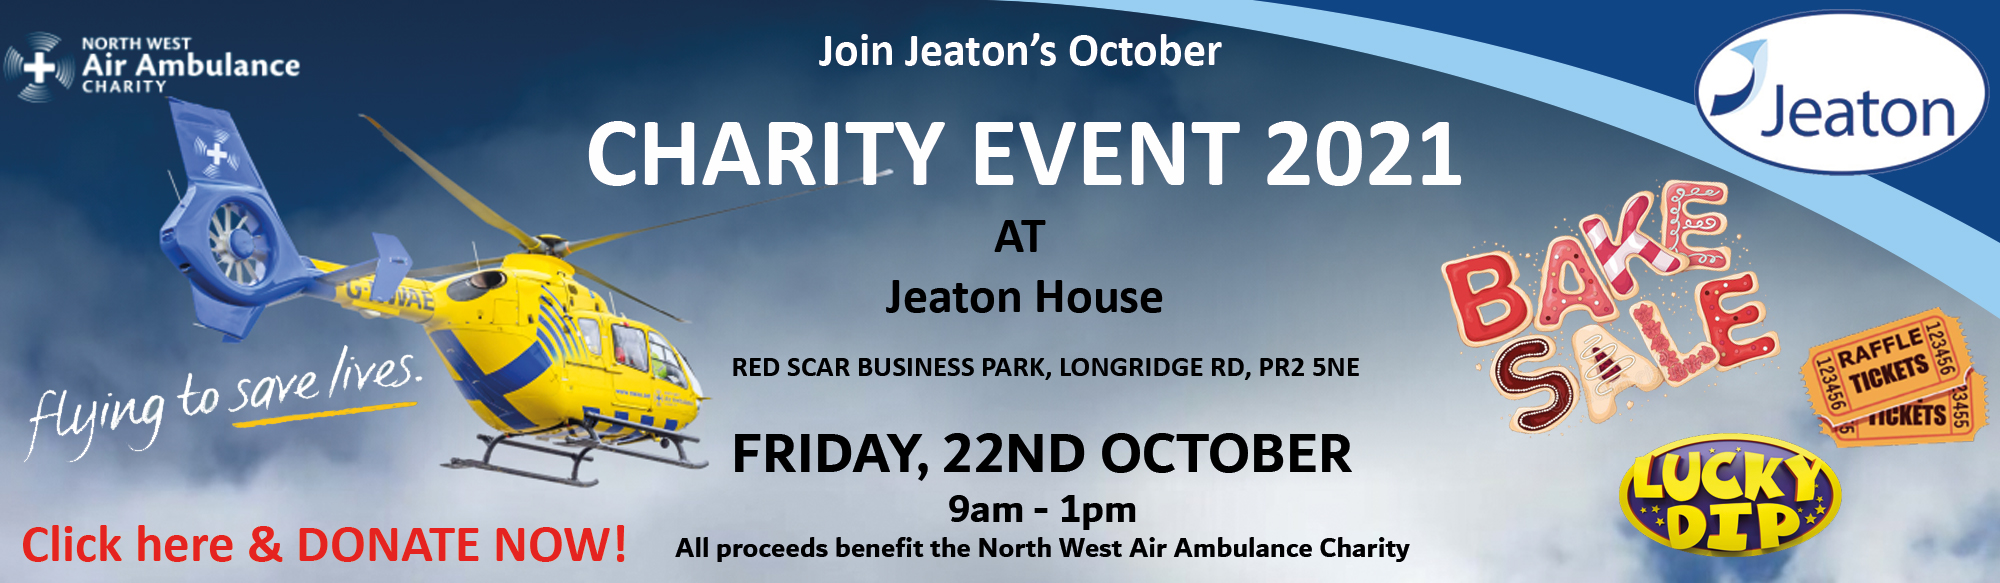 Jeaton October Charity Event 2021 banner v2